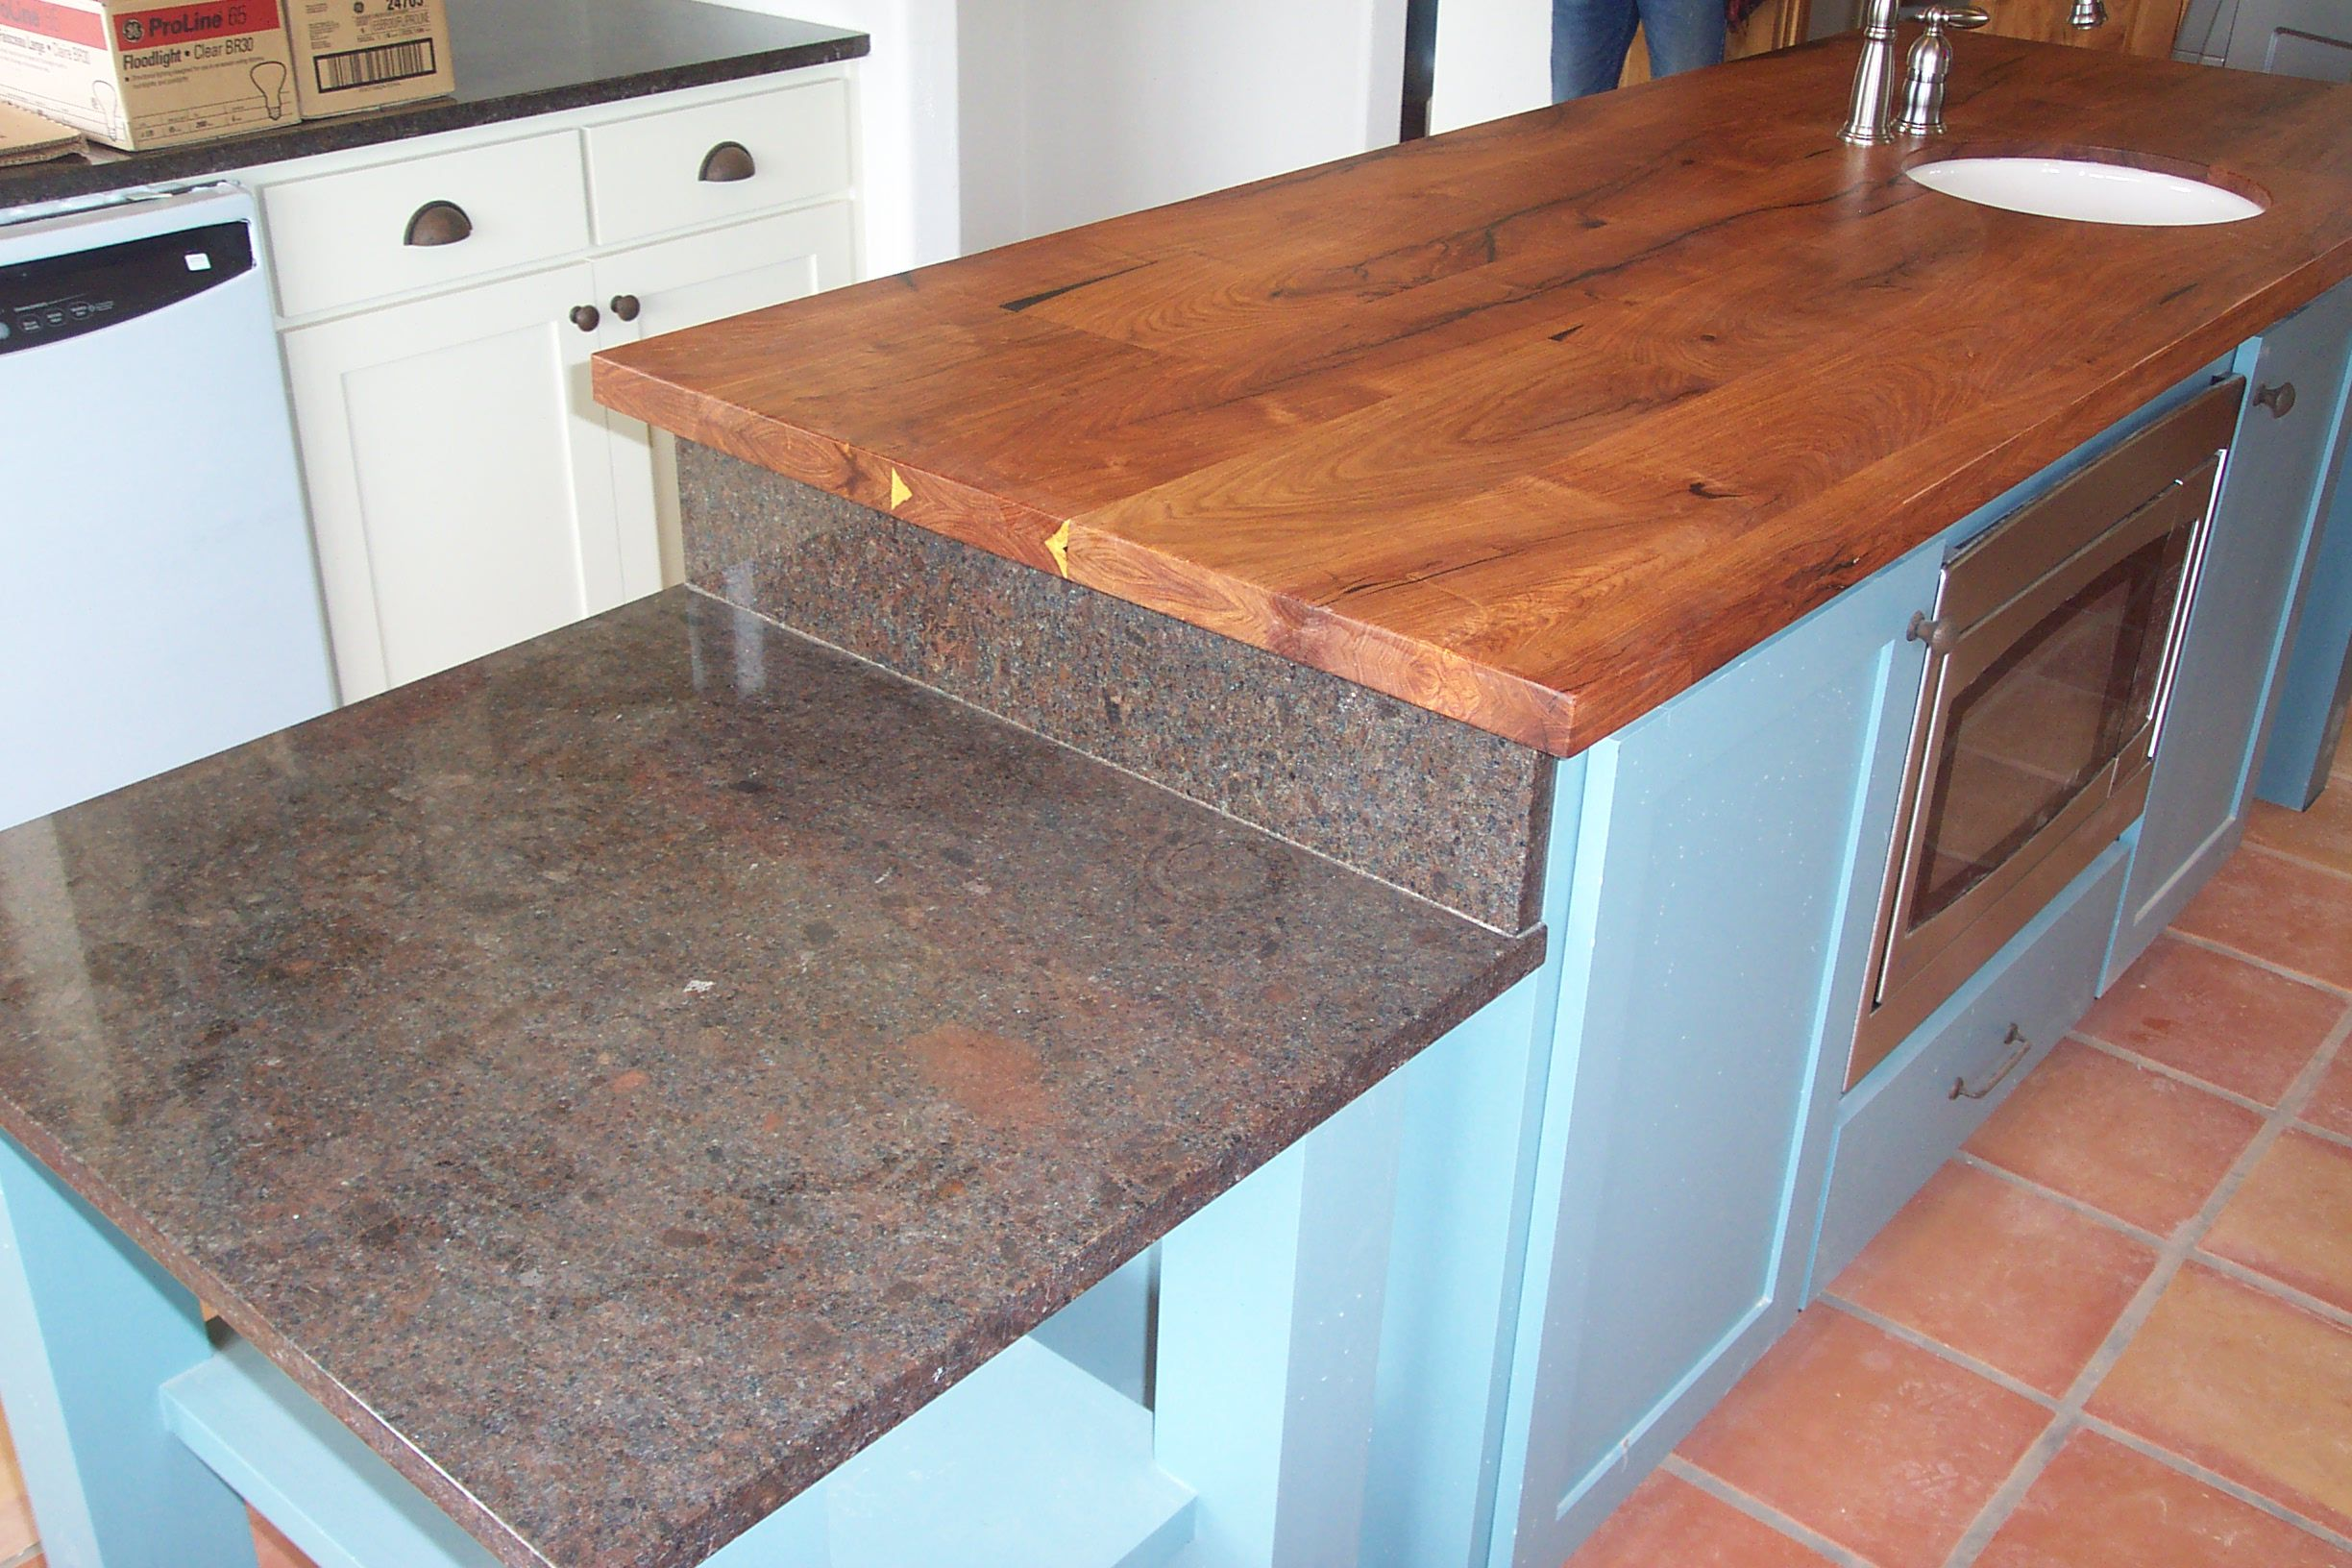 Mixing Granite And Mesquite Works Well In This Kitchen Countertops Kitchen Home Decor